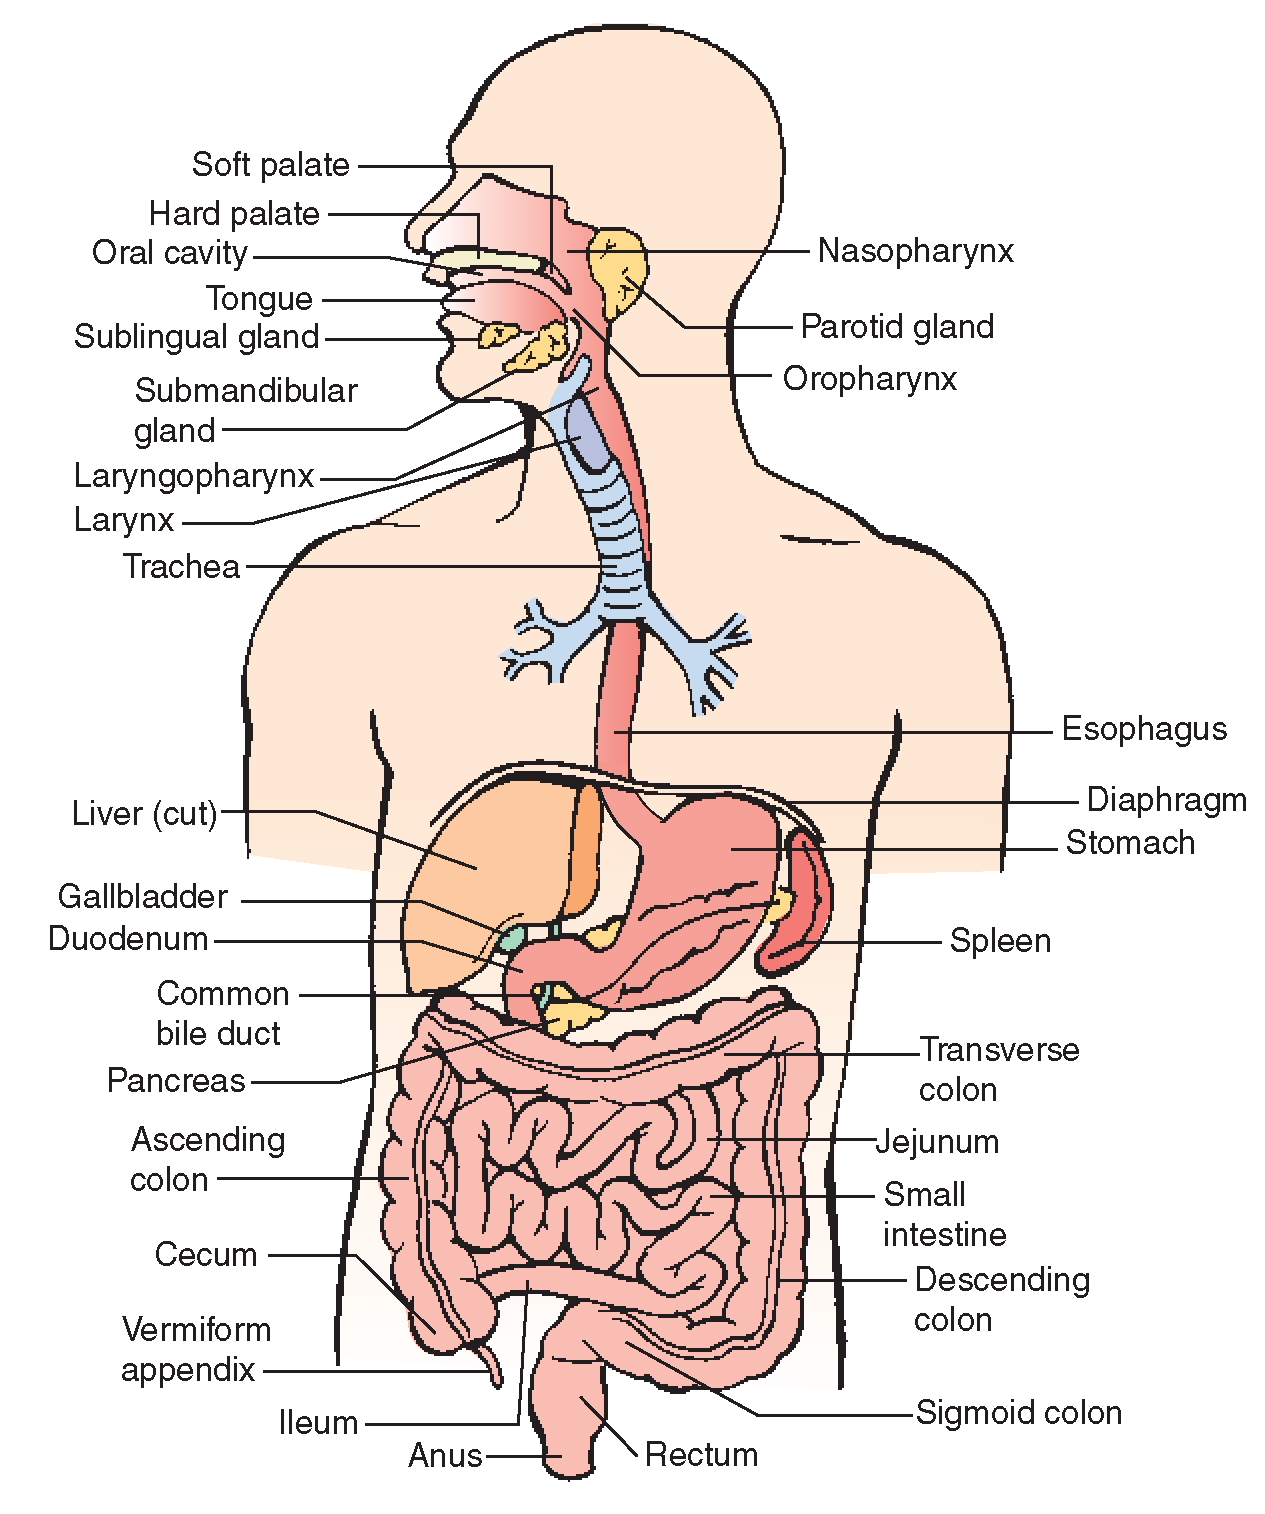 the human digestive system - lessons - tes teach, Human Body